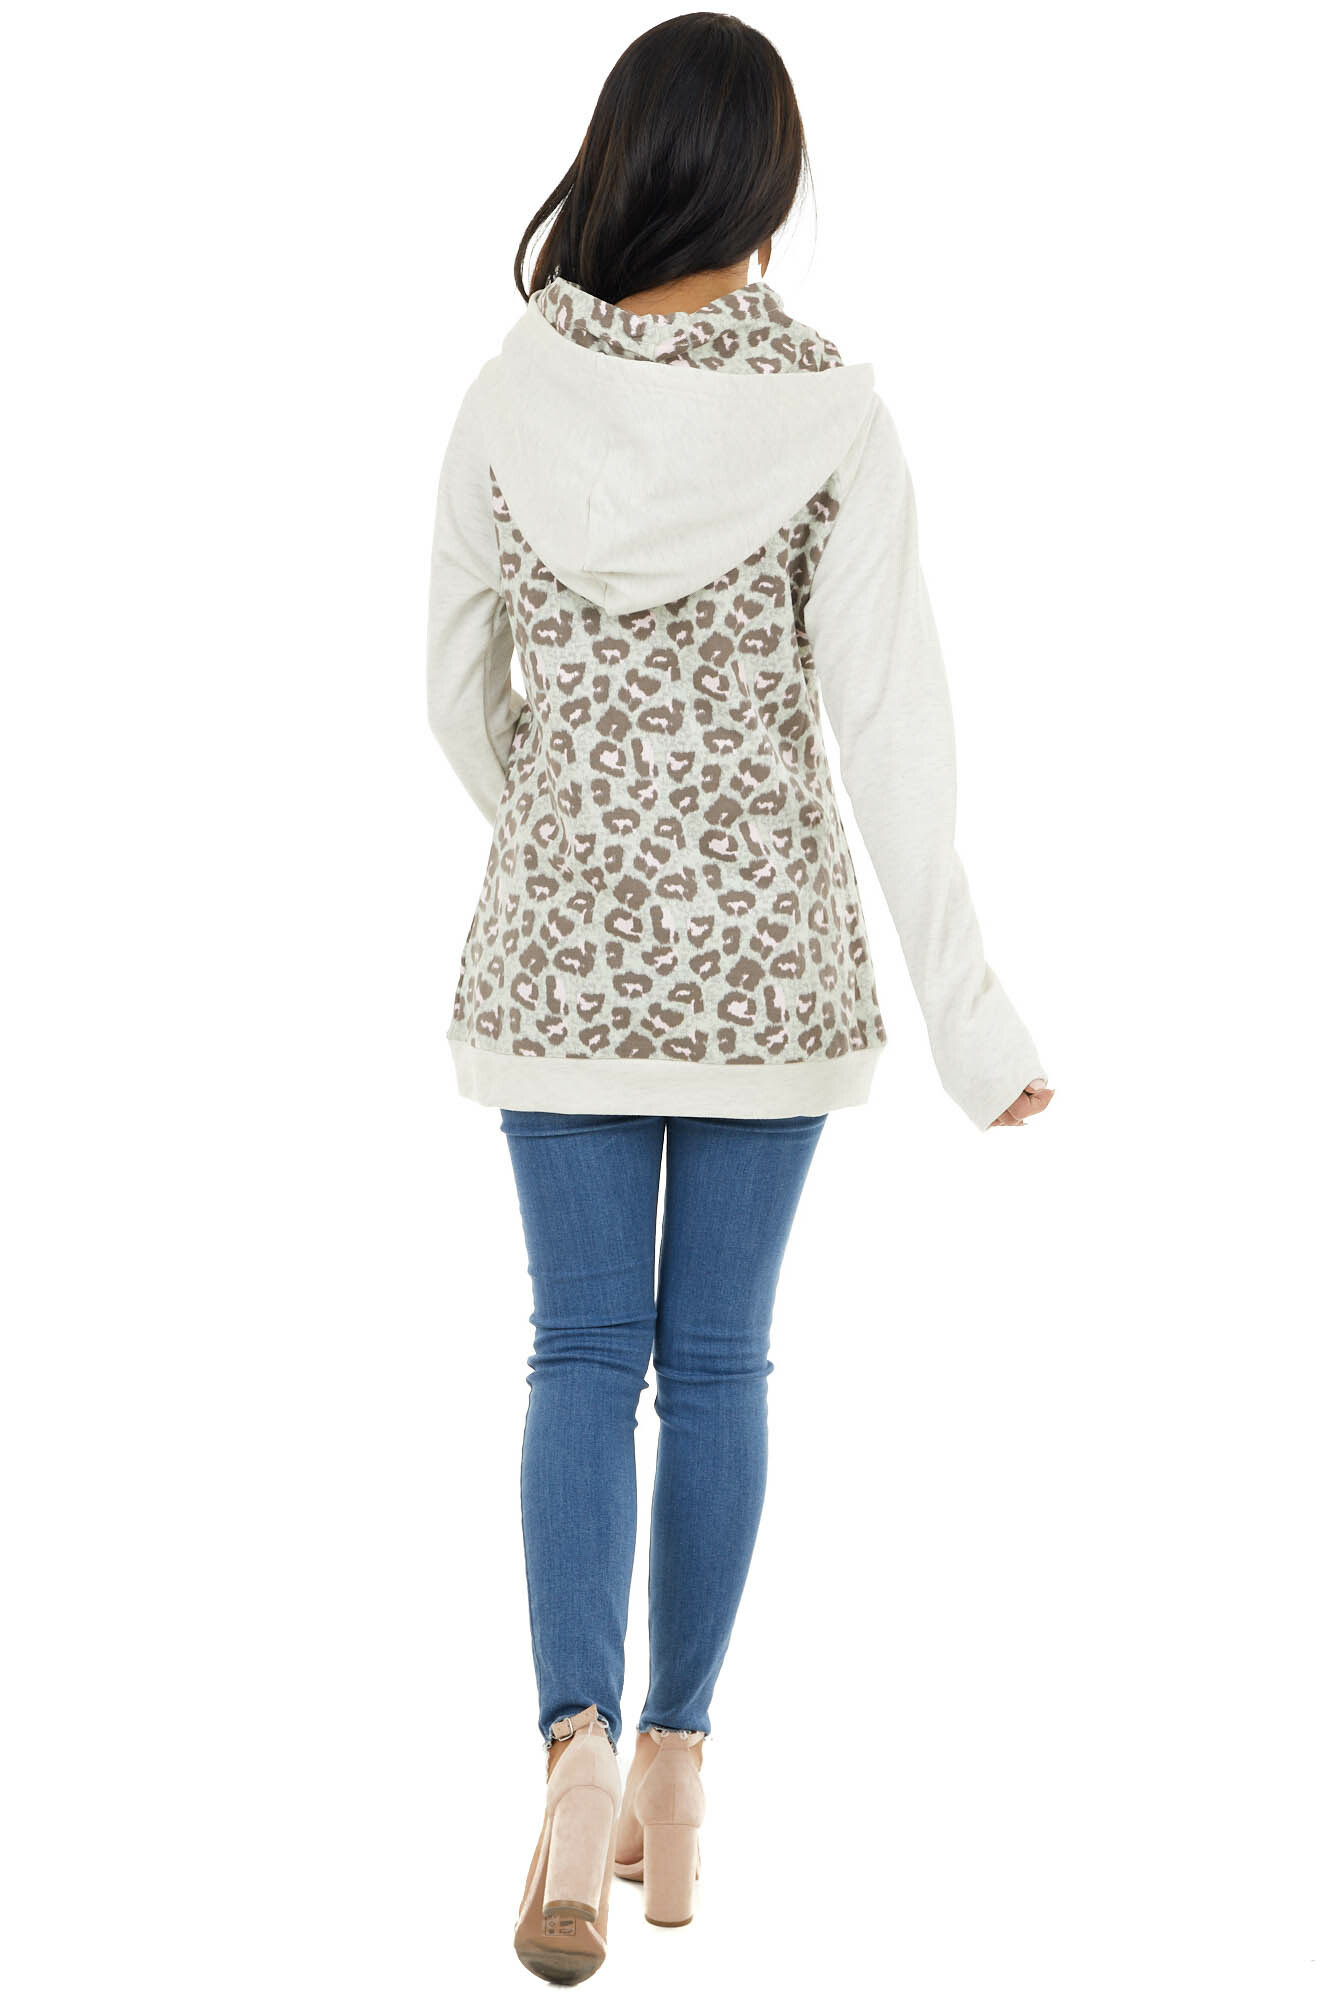 Oatmeal and Leopard Print Long Sleeve Hoodie with Pockets